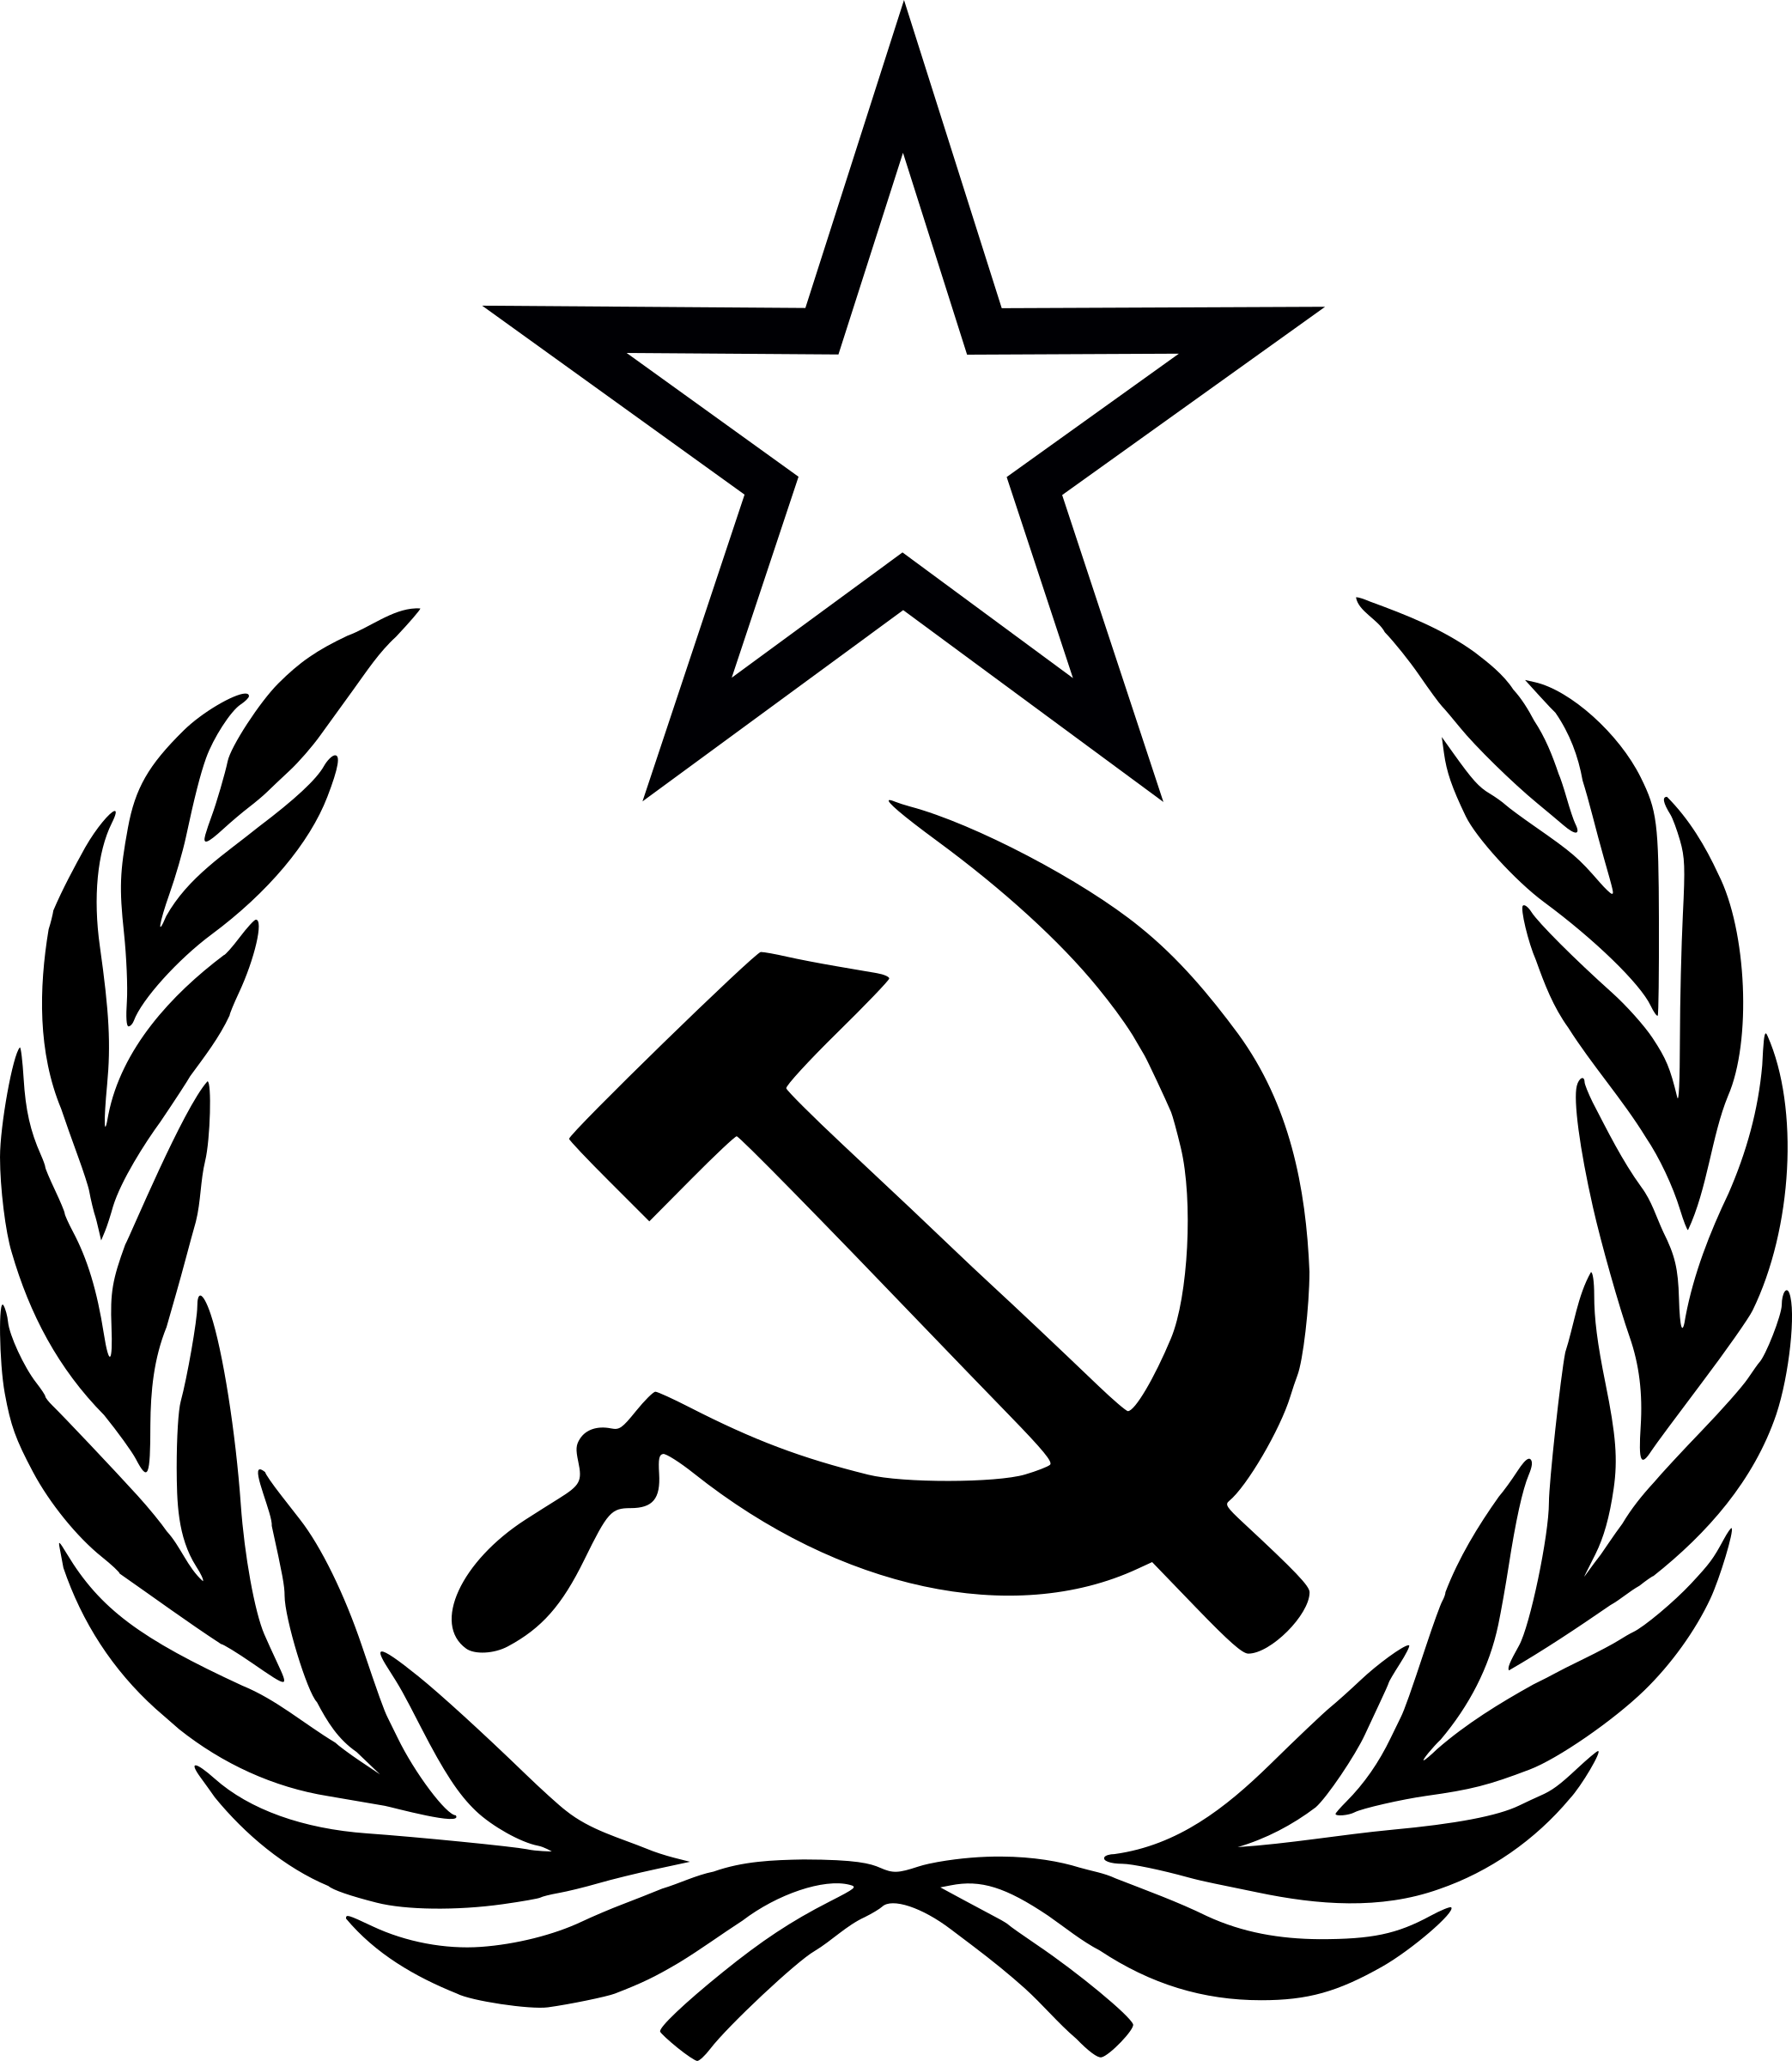 Hammer sickle png. Star wreath icons free